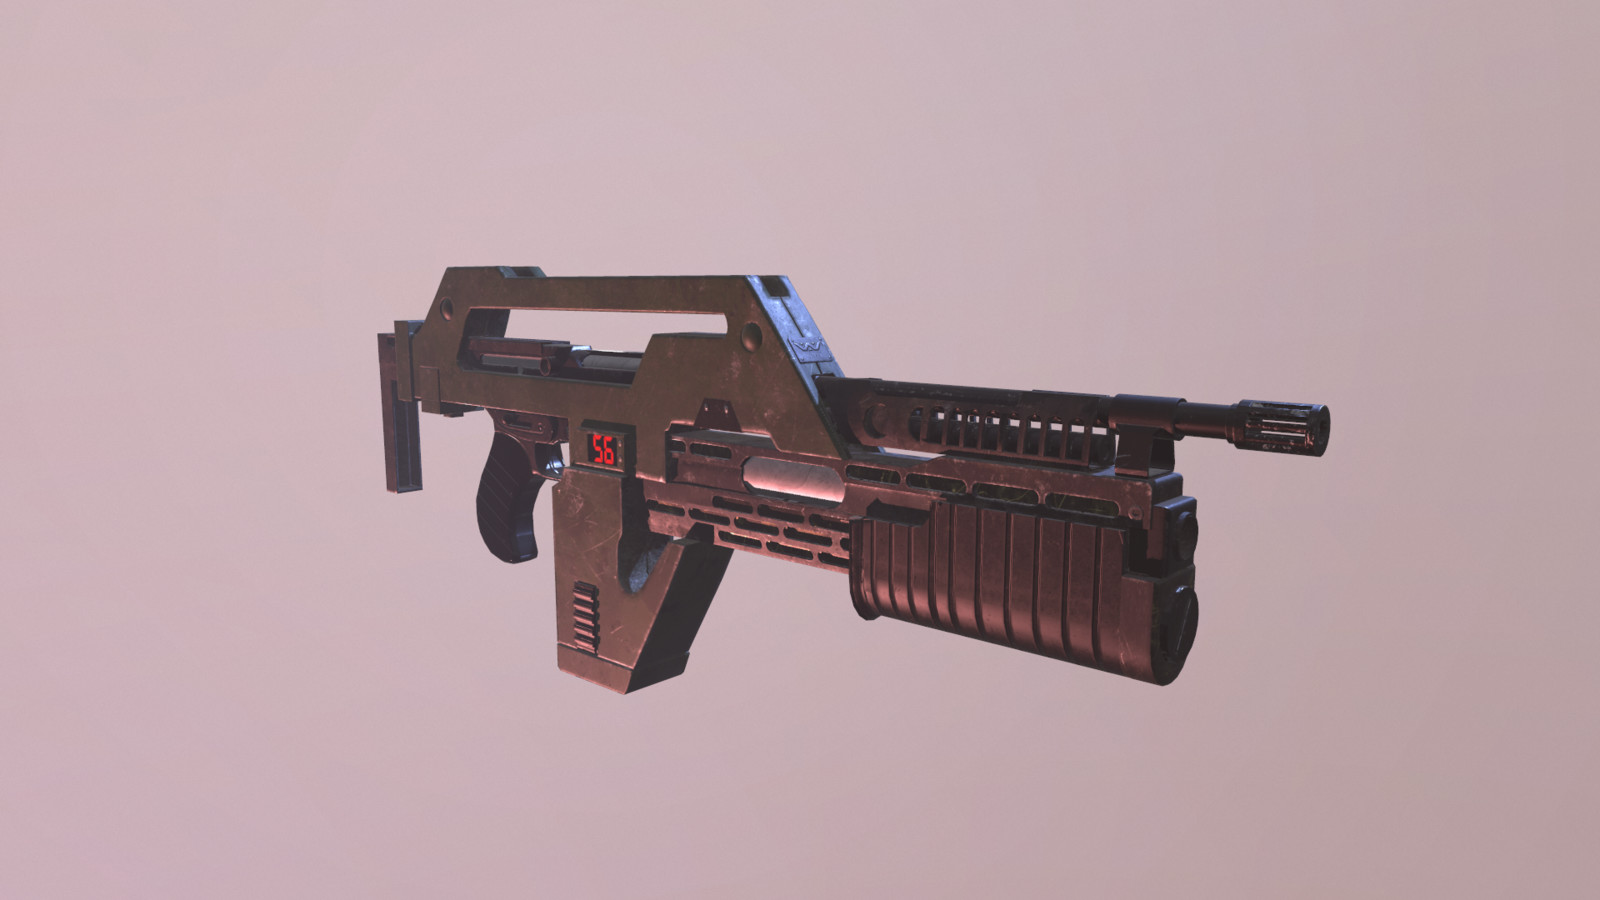 M4A1 Pulse Rifle from the ALIENS Series